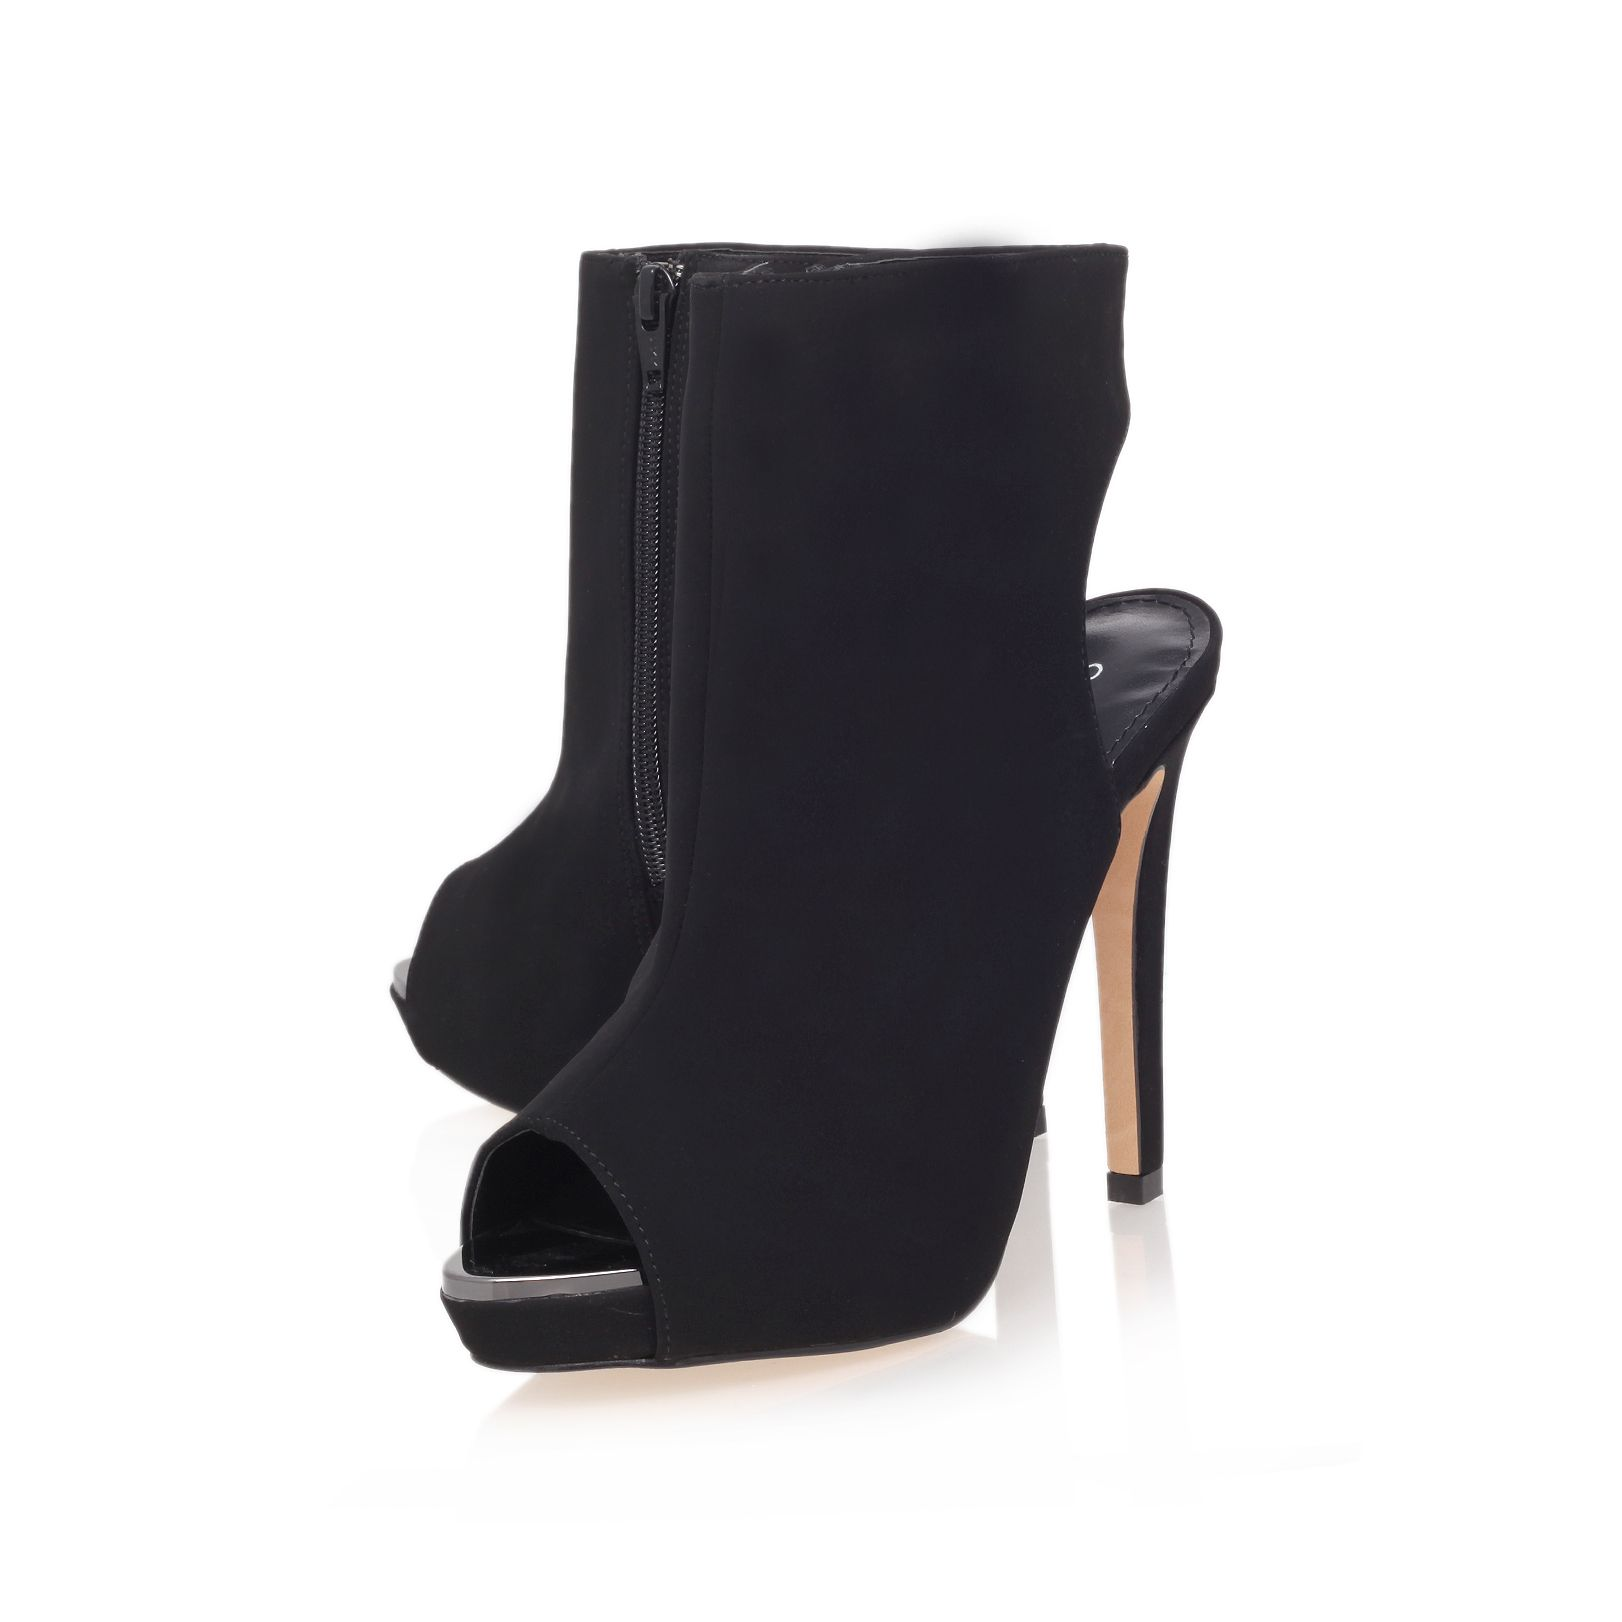 Game high heel occasion boots